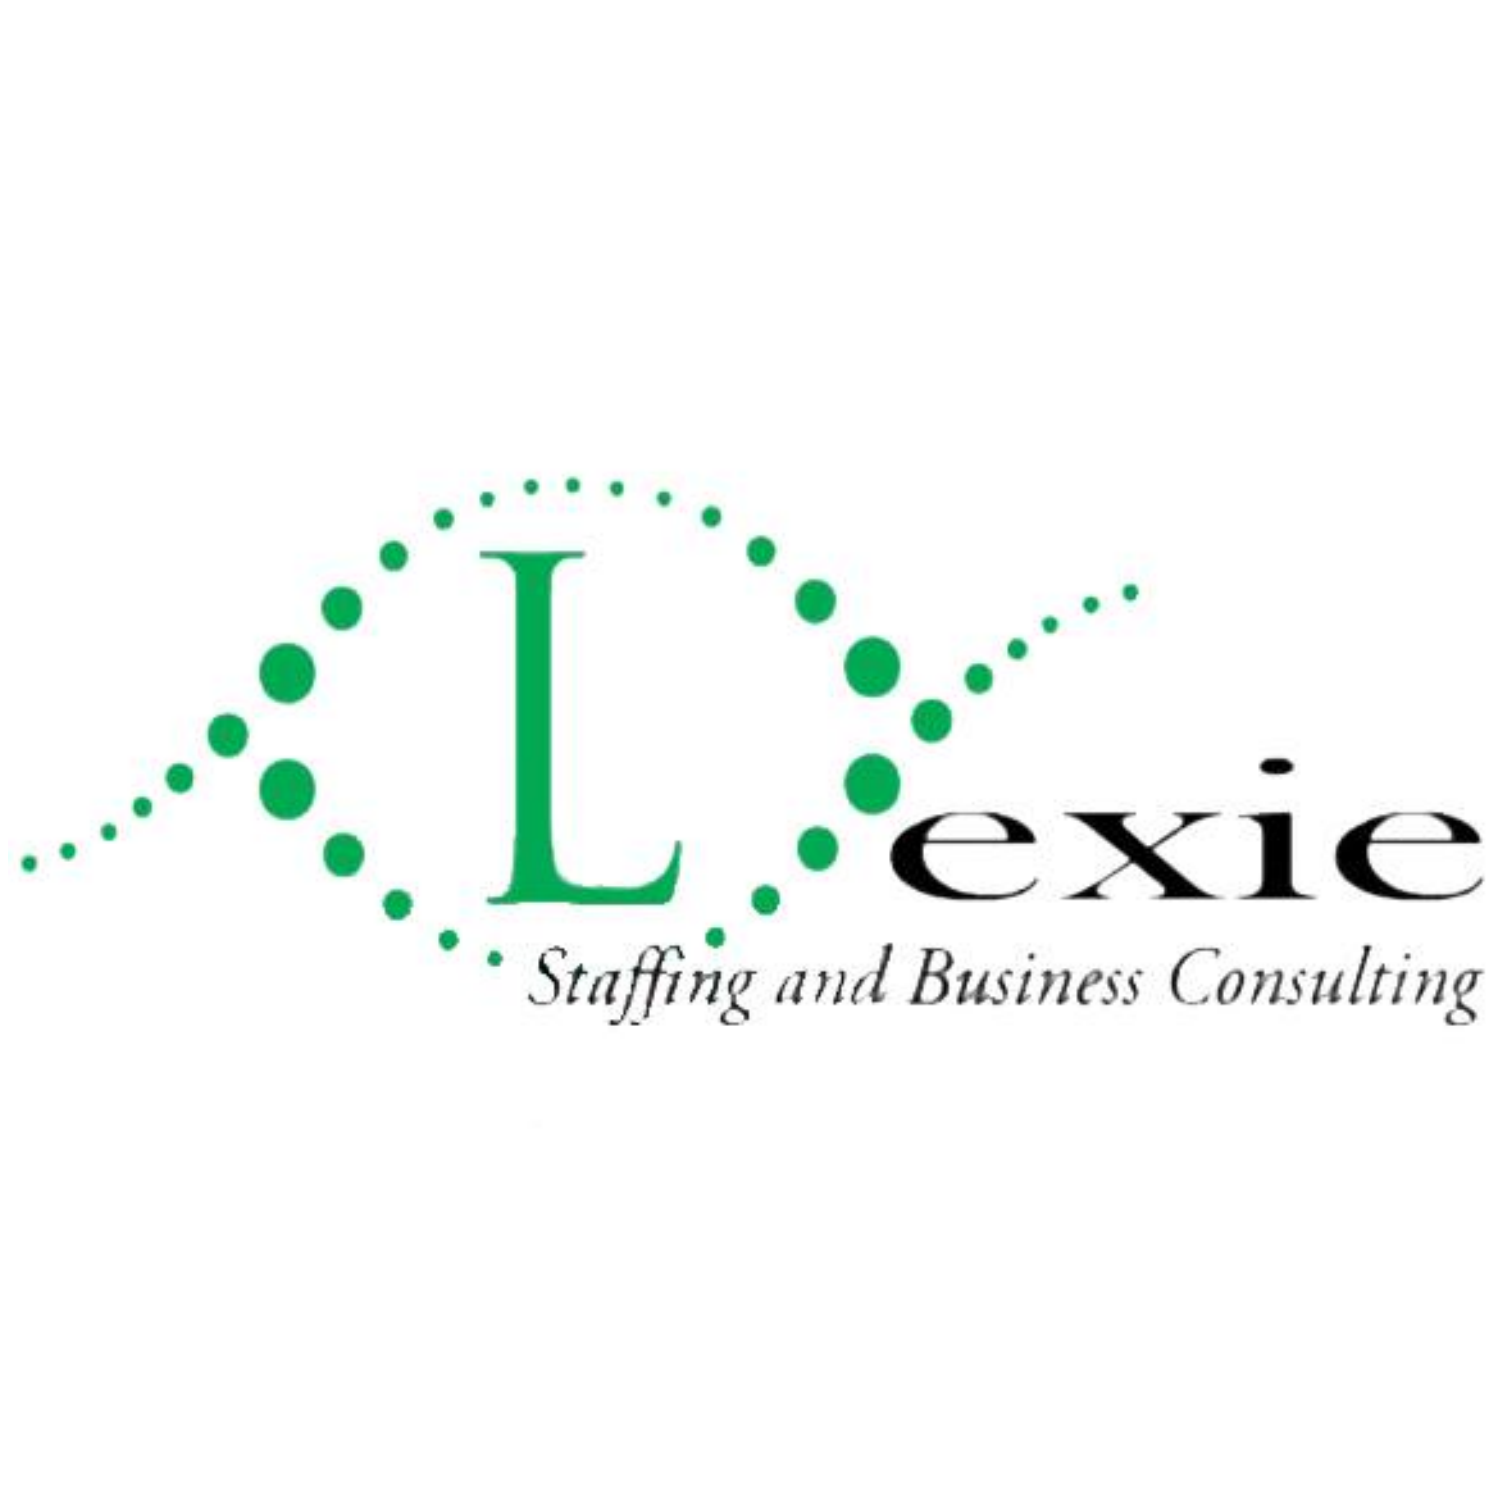 Lexie Staffing & Business Consulting